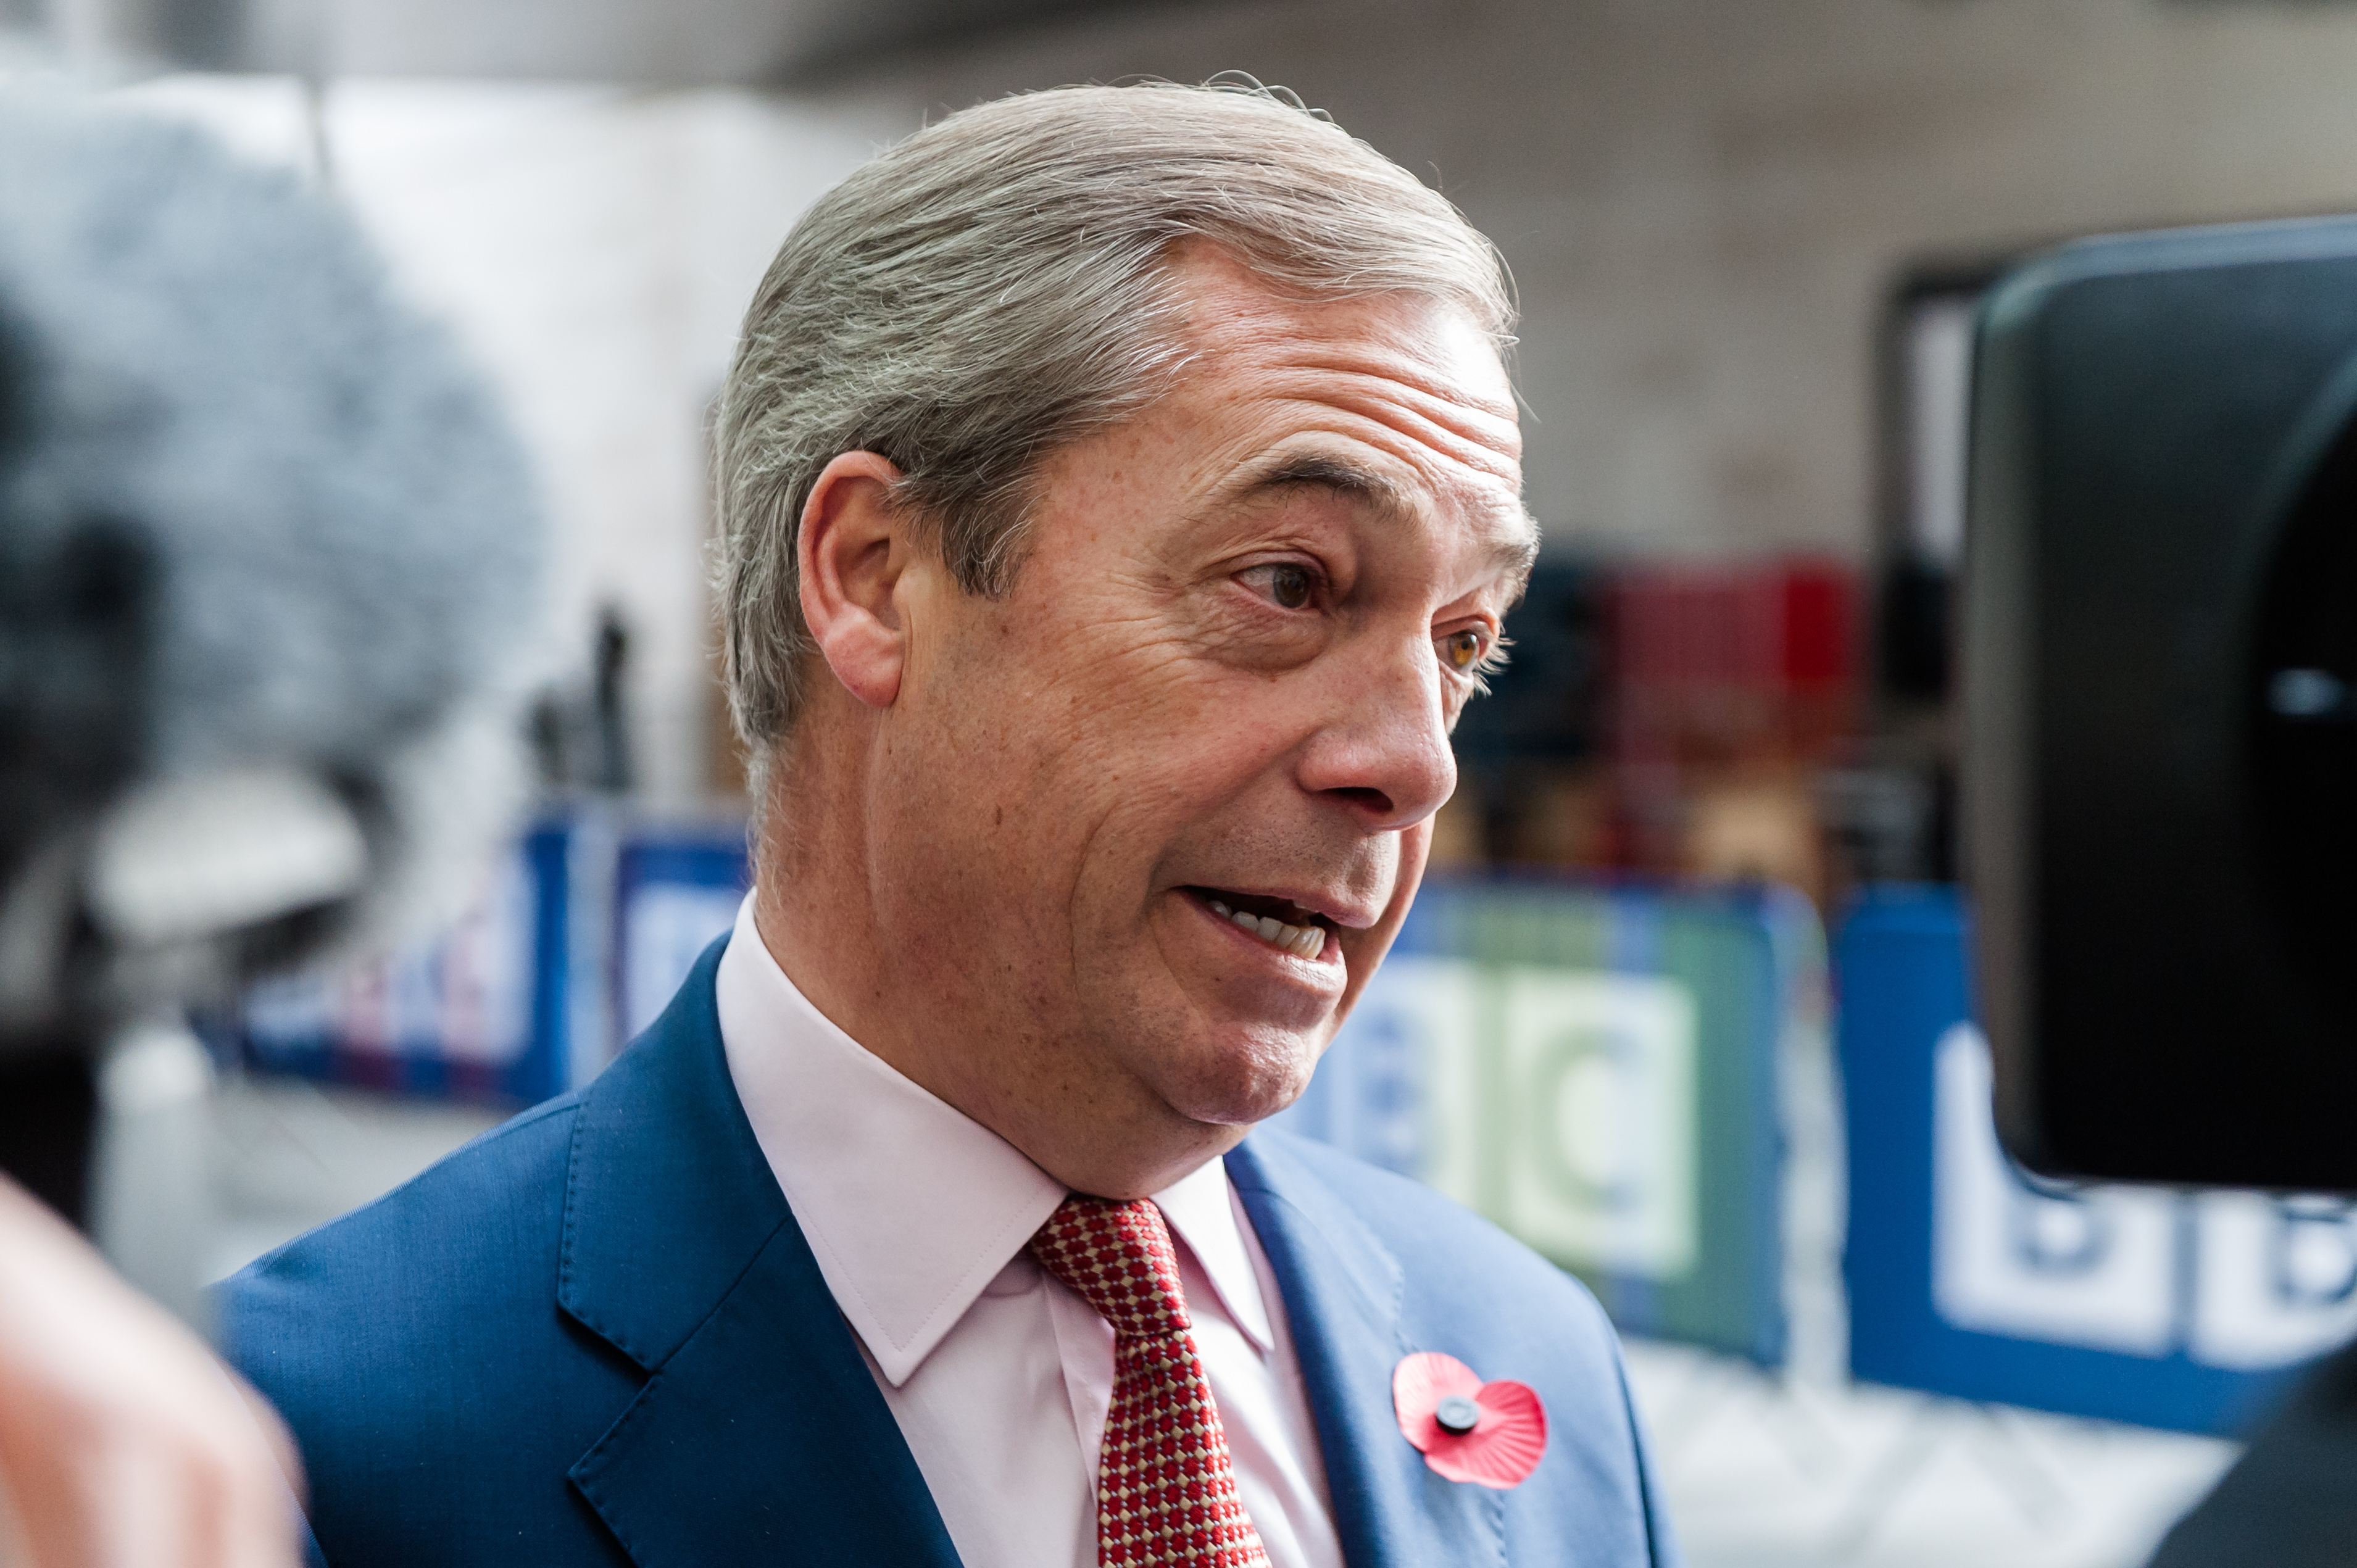 Support for Nigel Farage's Brexit Party has fallen sharply (Picture: Getty)